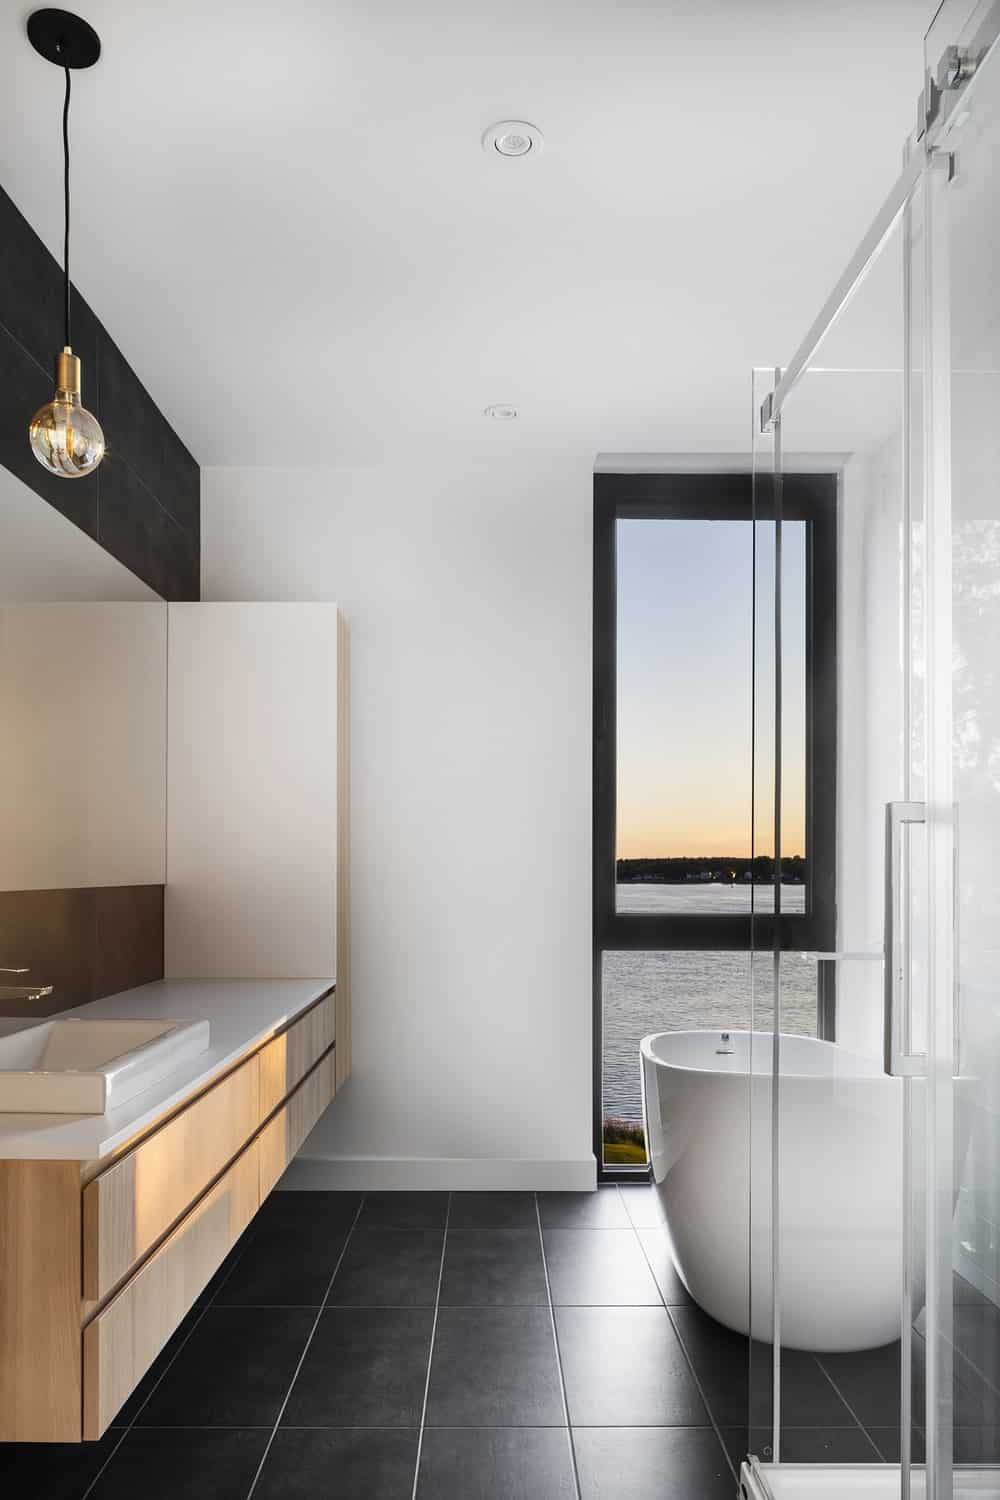 This bathroom has a glass-enclosed shower area, a freestanding bathtub at the far corner by the window and a floating wooden vanity with white countertop.